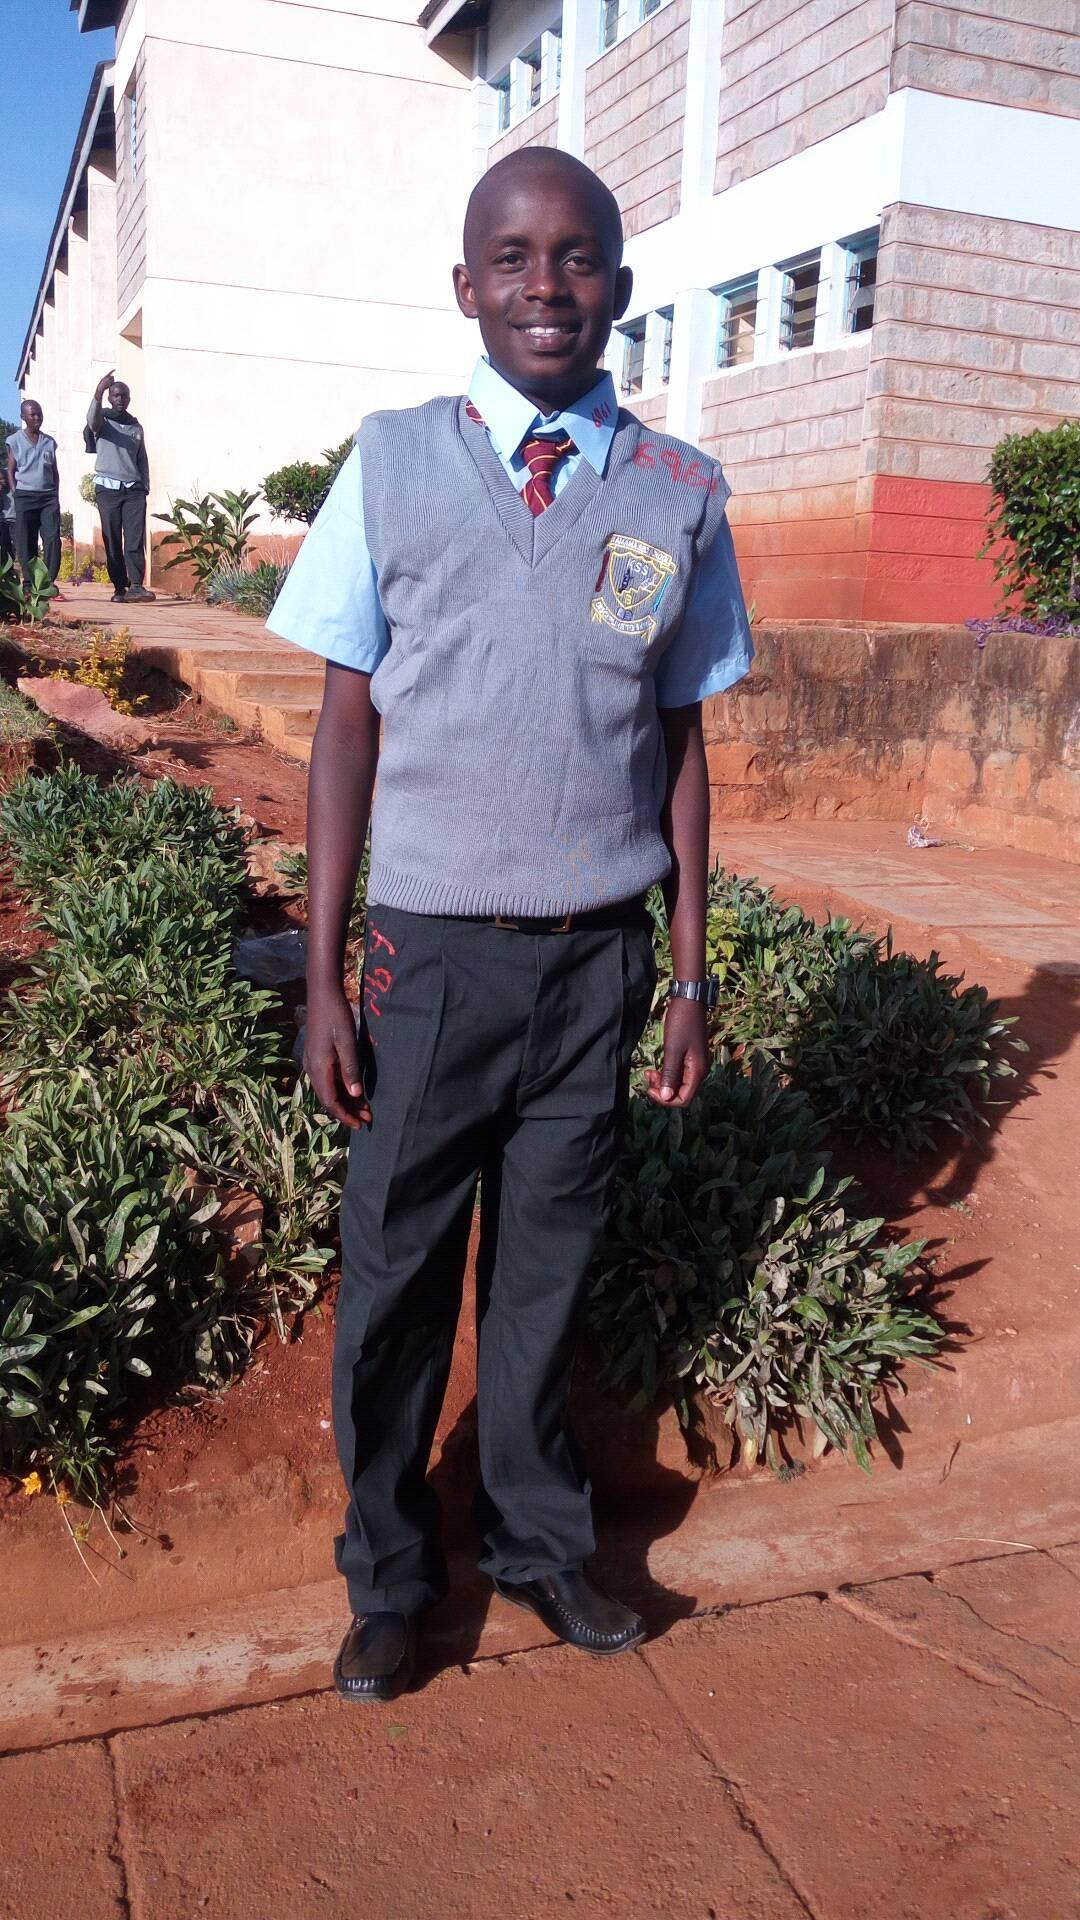 Charles started secondary school.